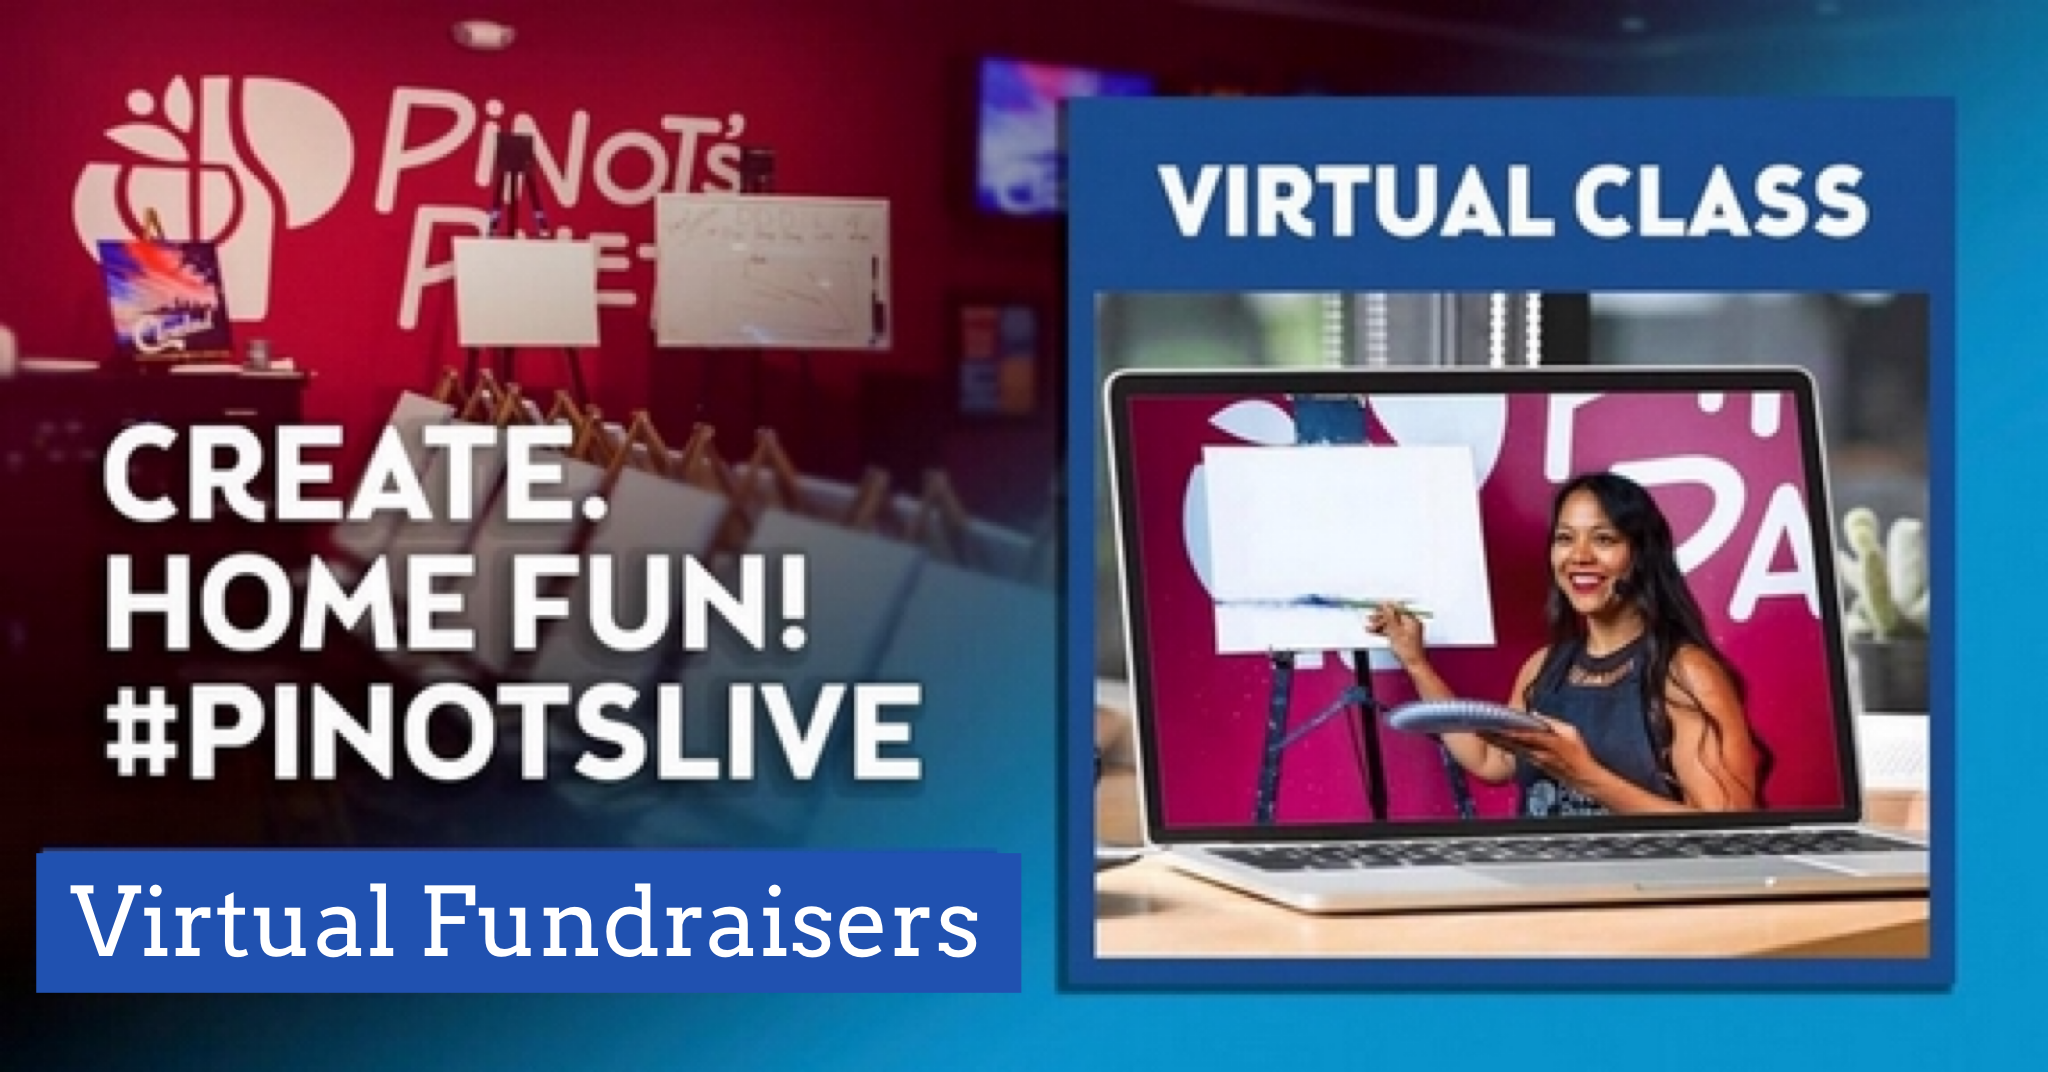 NEW! Virtual Fundraisers!